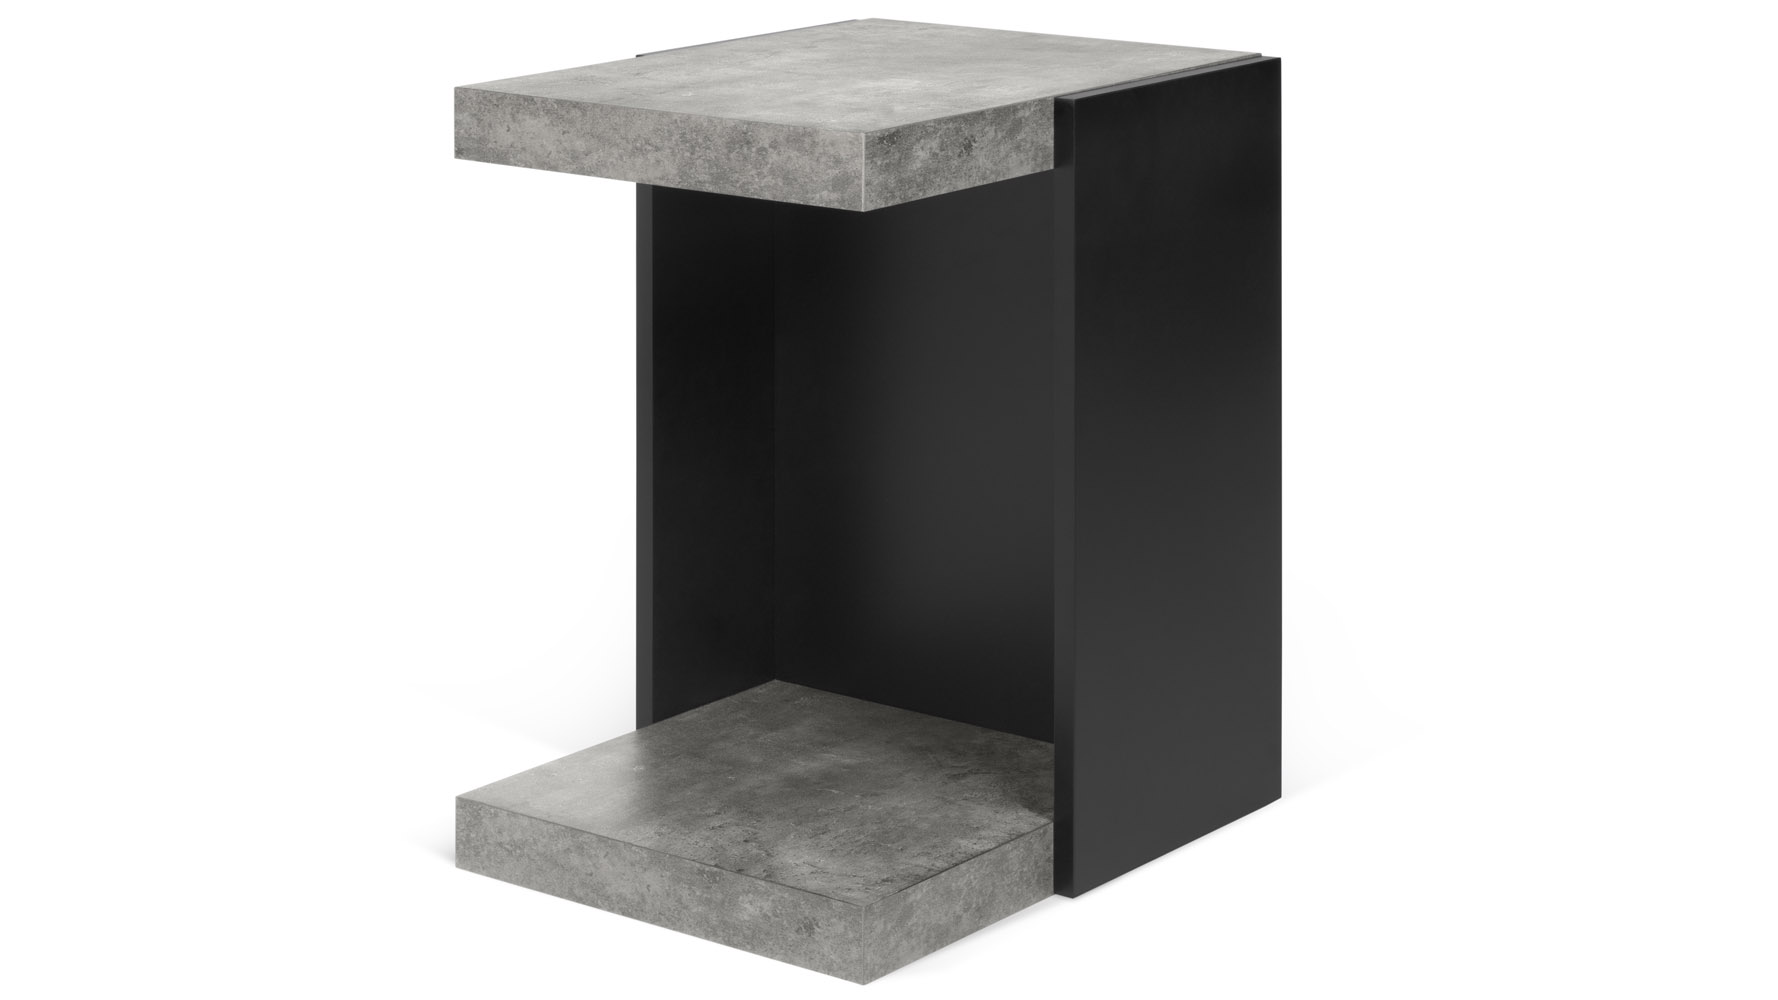 coffee tables living room modern console zuri zion side table concrete color pure black pedestal accent furniture metal legs pier one counter stools mosaic garden outdoor shoe